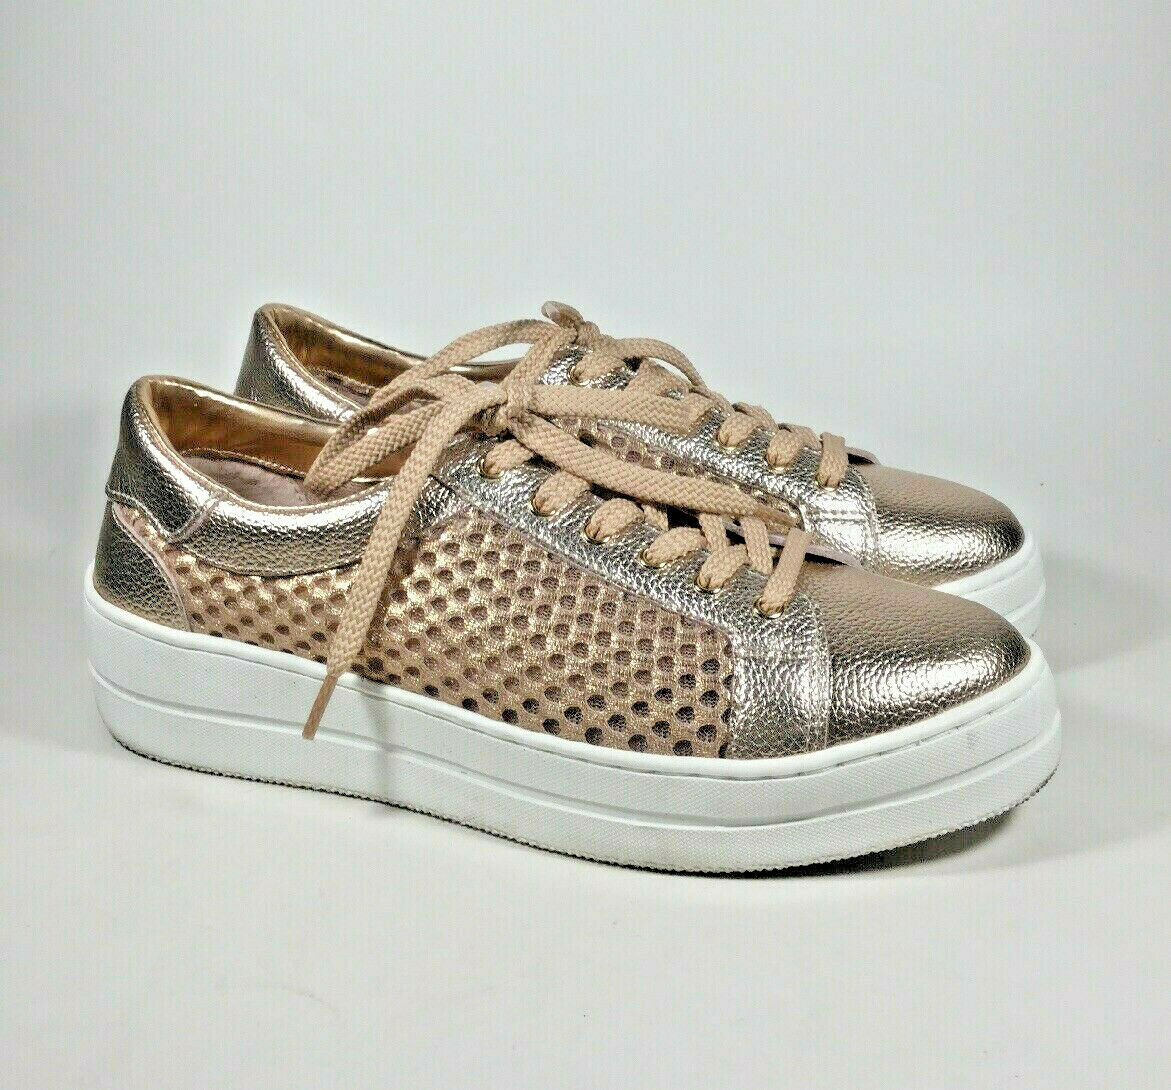 M4659 PreOwned Women's Steven Napa Leather Mesh pink gold Lace Up Sneaker US 8 M